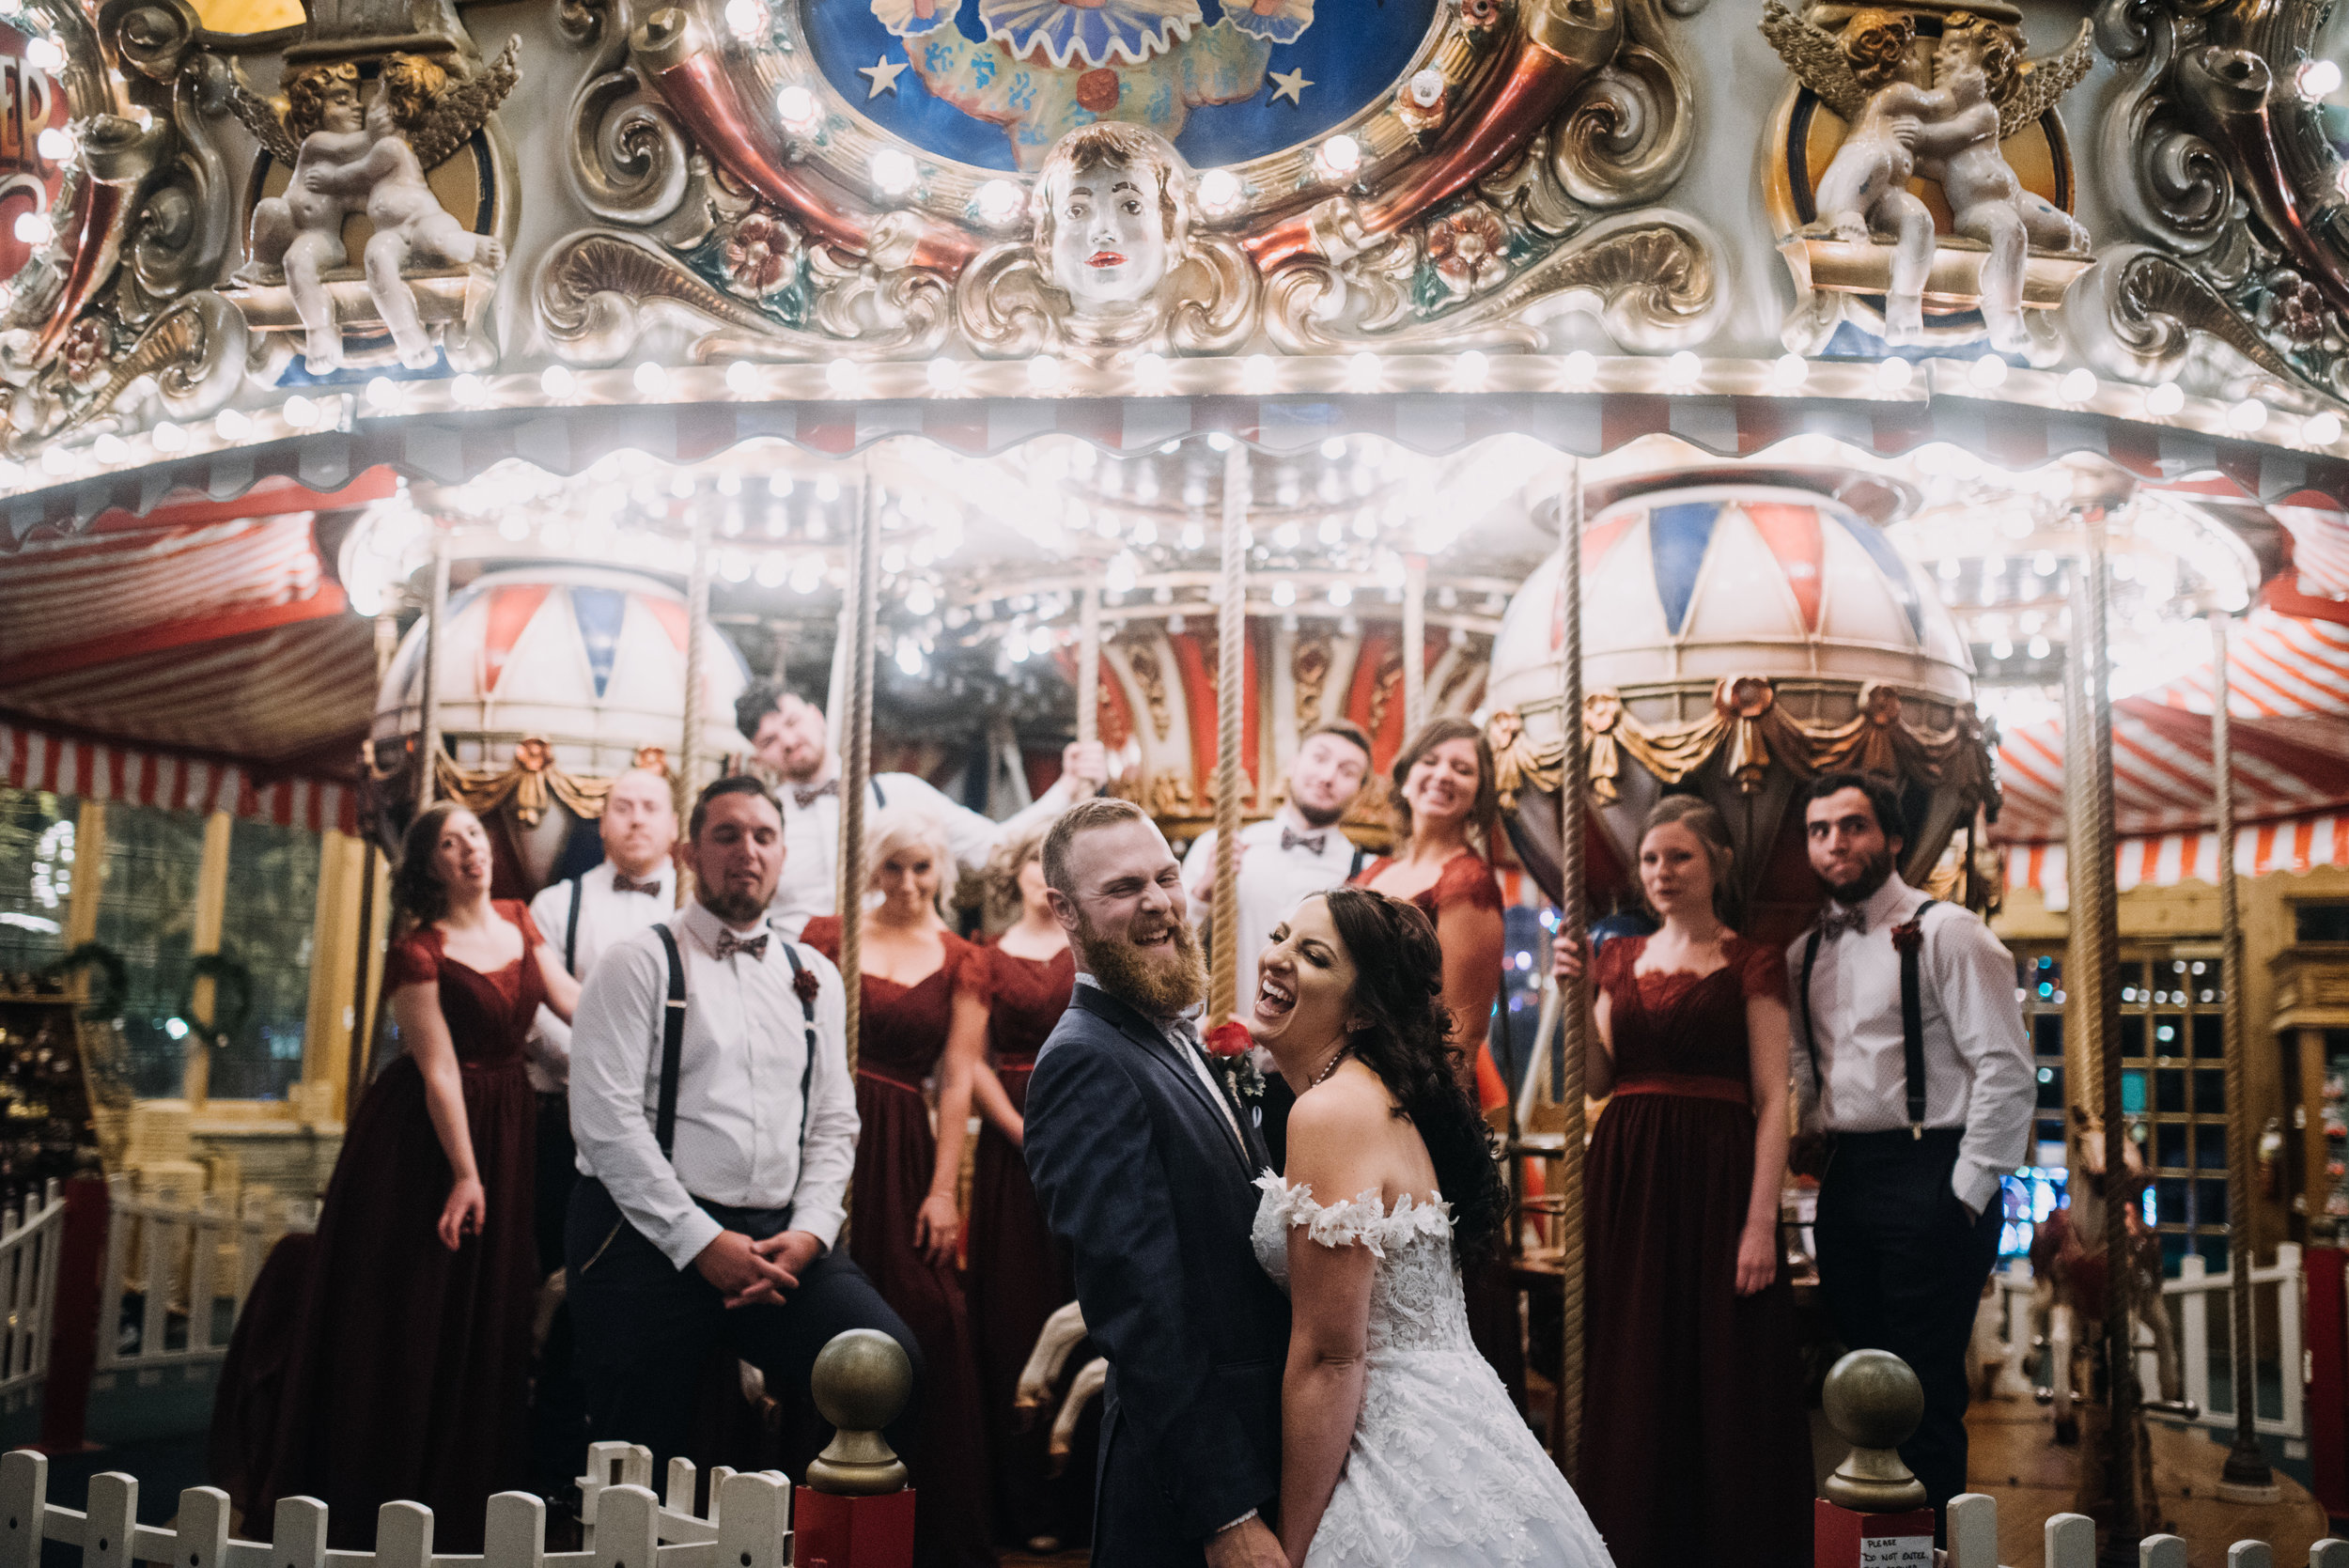 Bridal party laughing in front of a merry go round